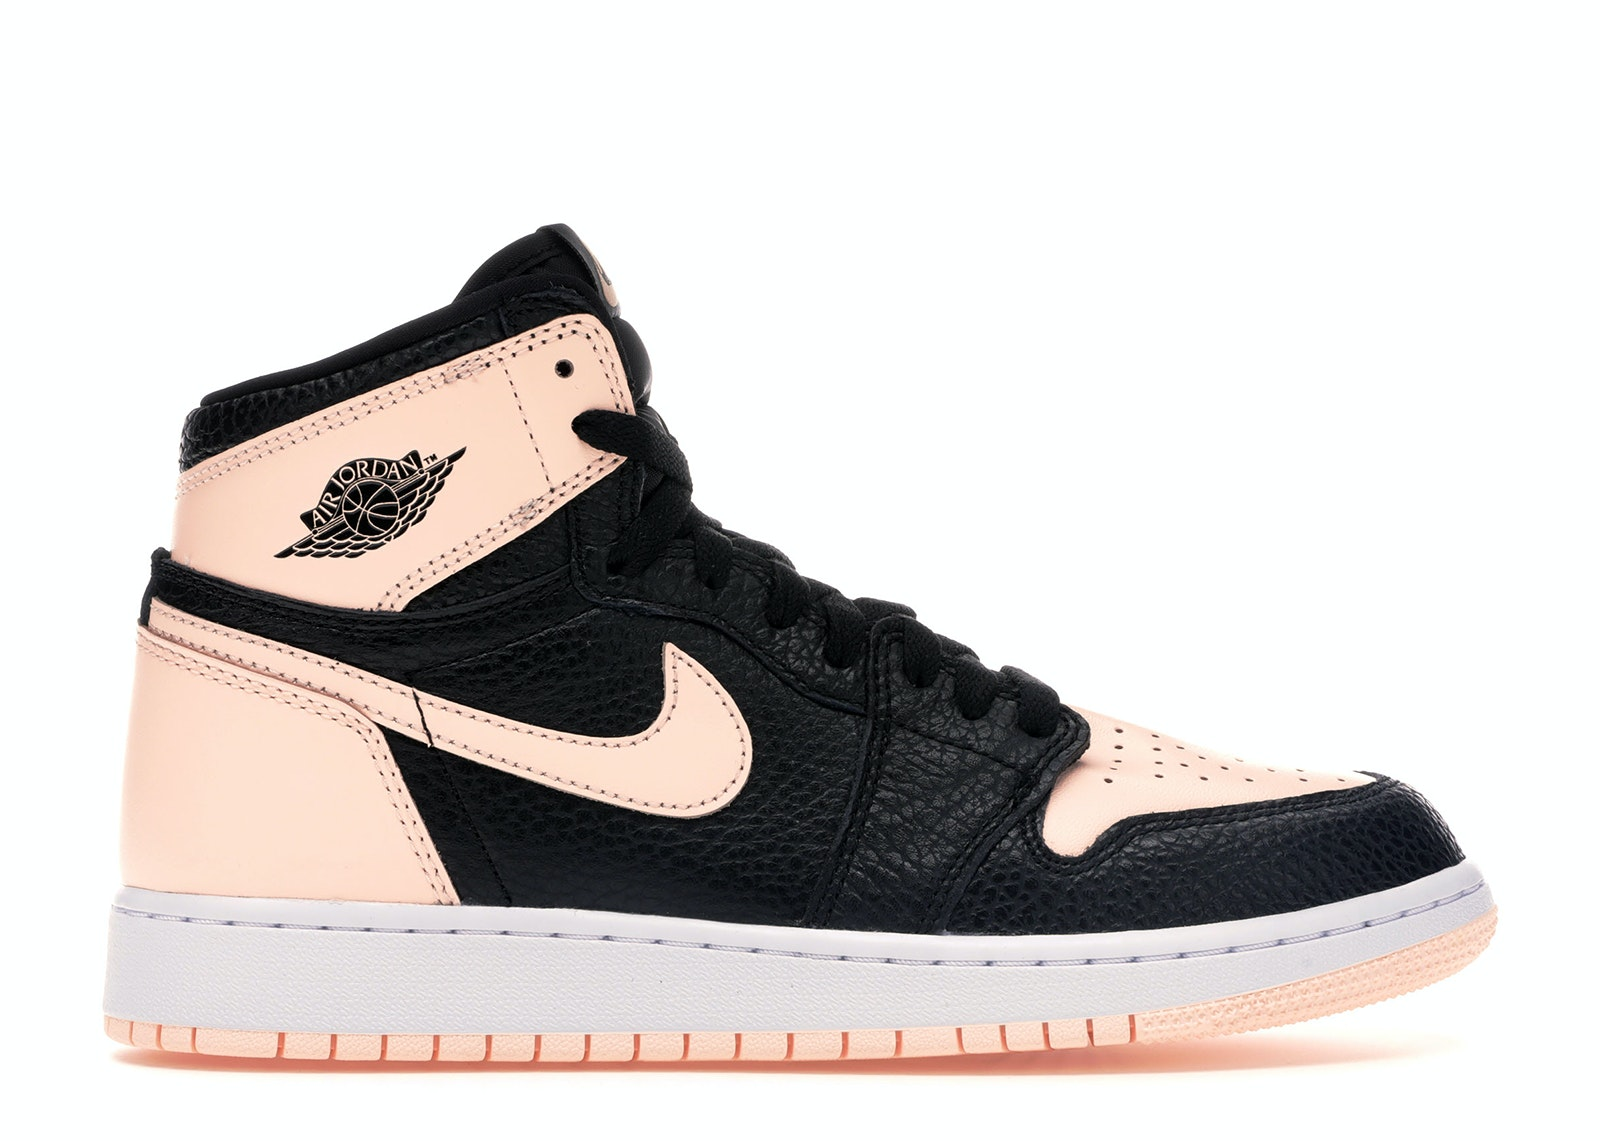 Jordan 1 Retro High Black Crimson Tint (GS)